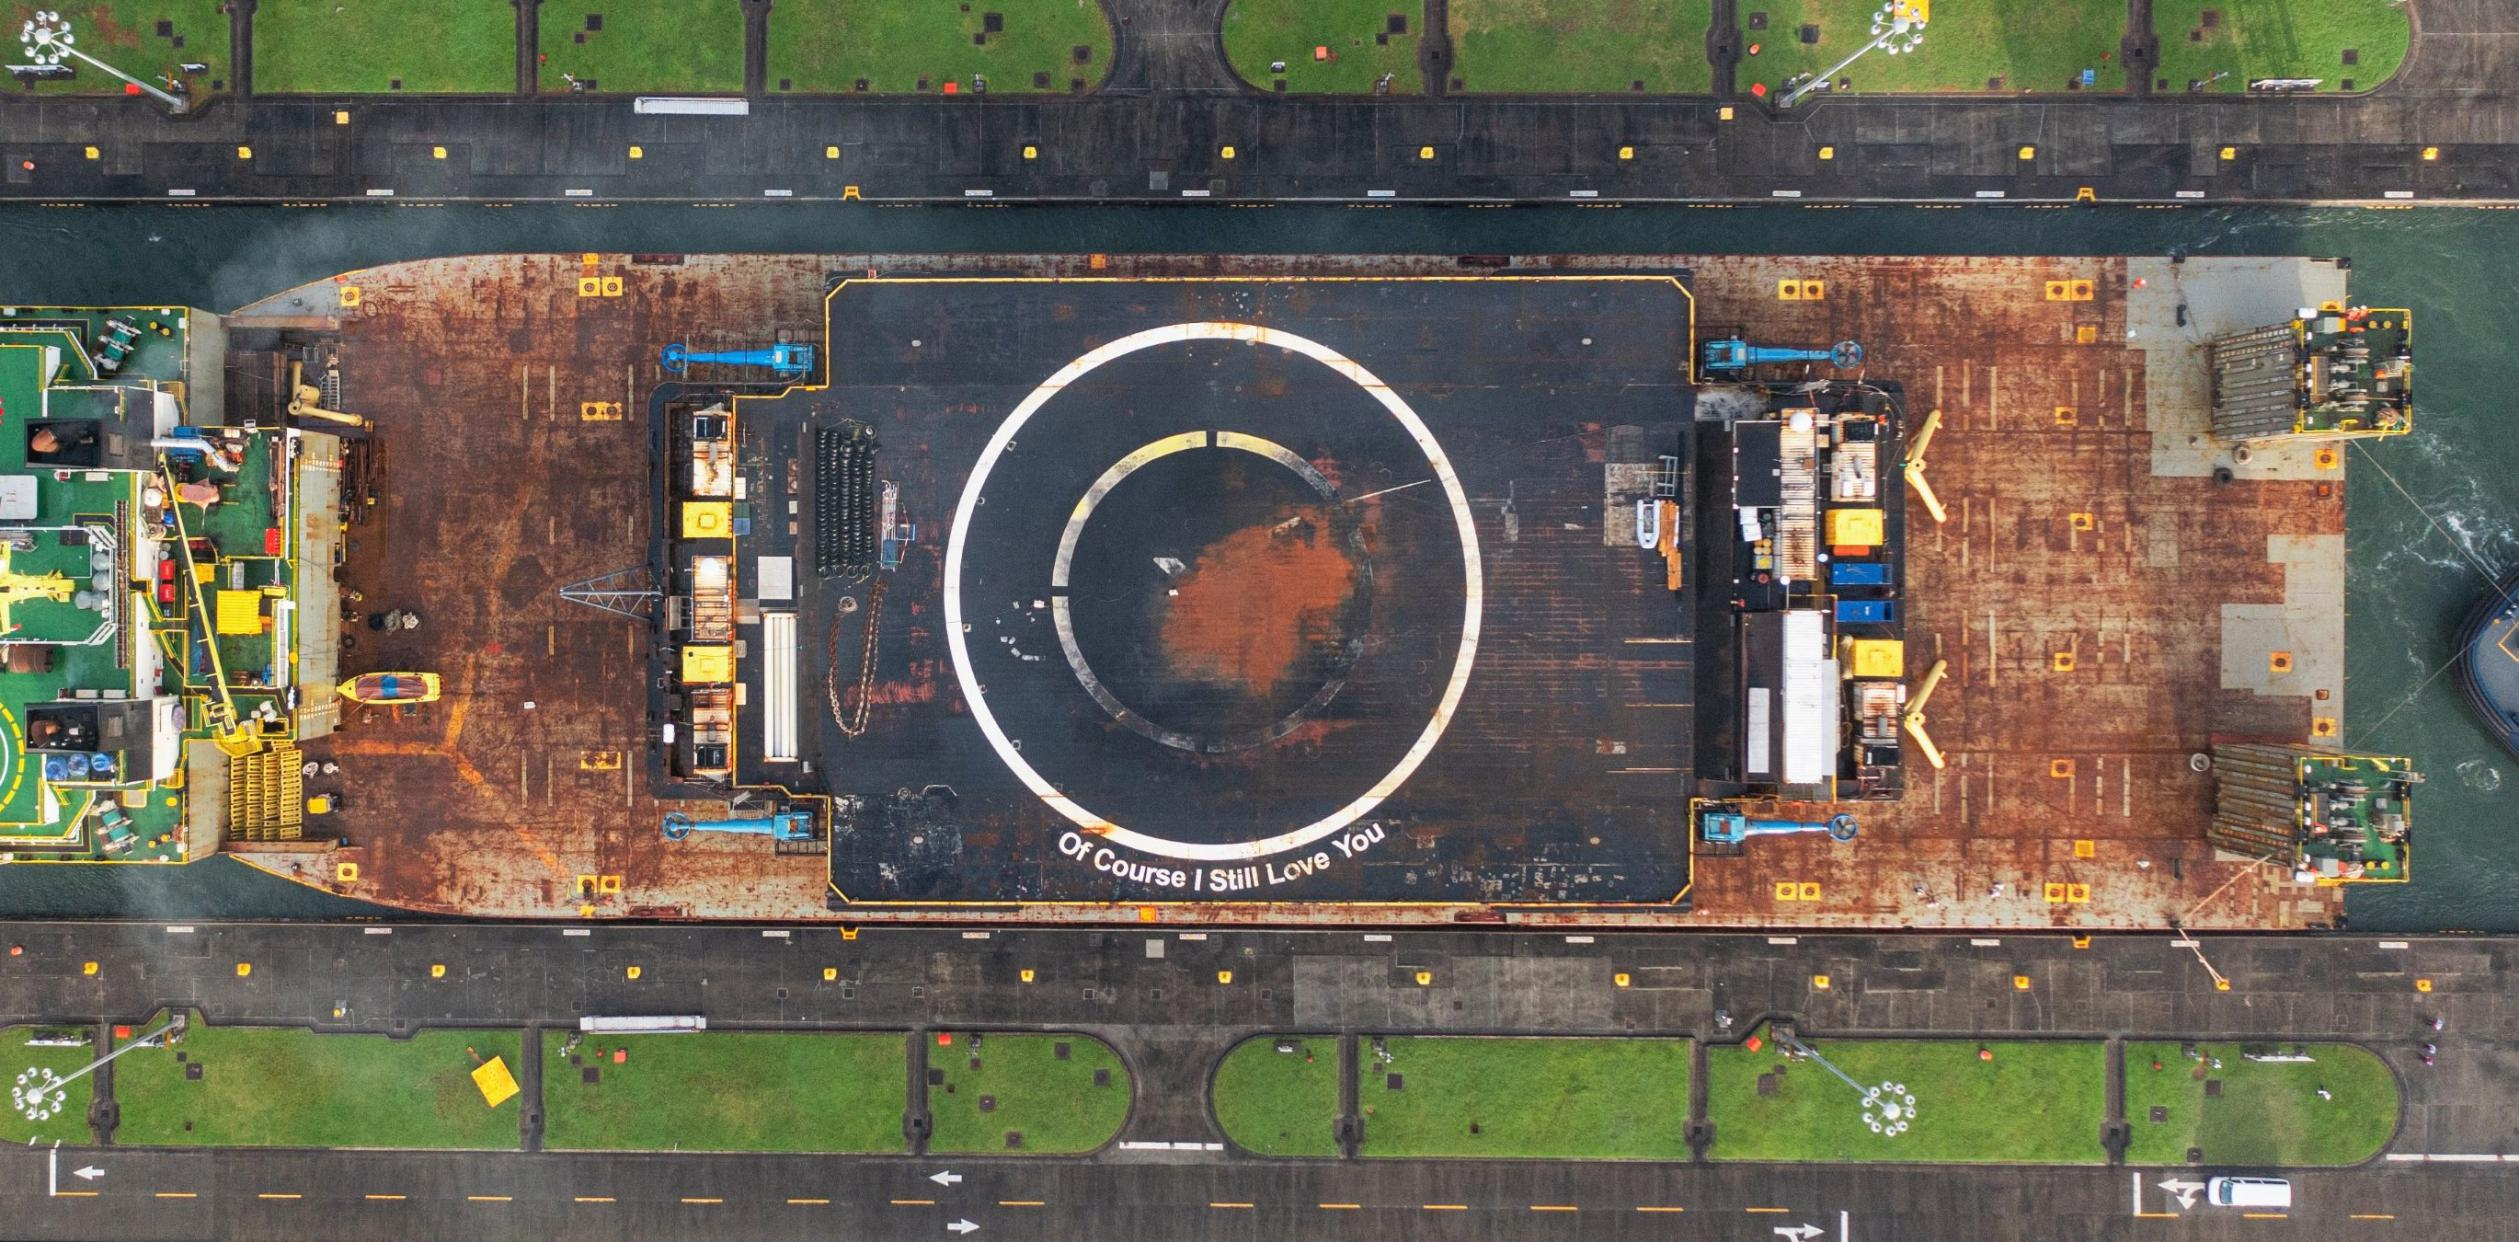 drone ship OCISLY canal transit 062521 (@ThePanamaCanal) 6 crop 3 (c)